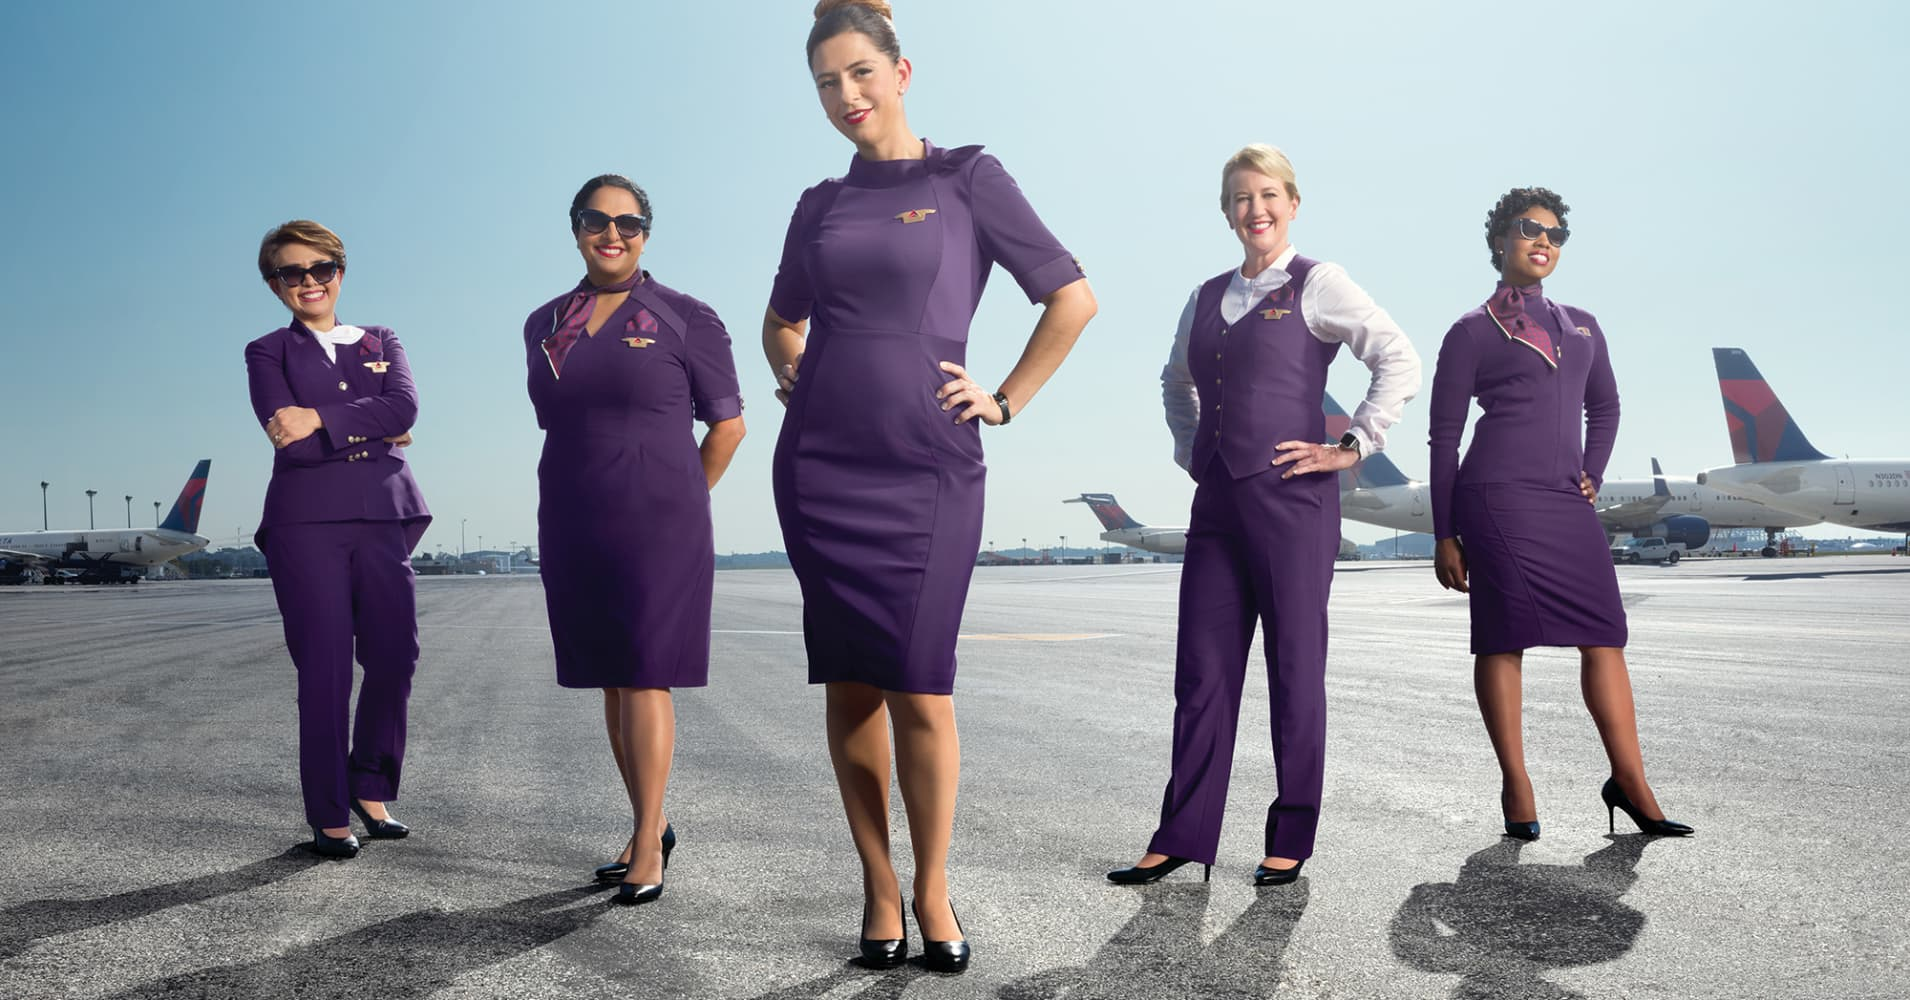 delta air lines new zac posen uniforms will go with shorter heels